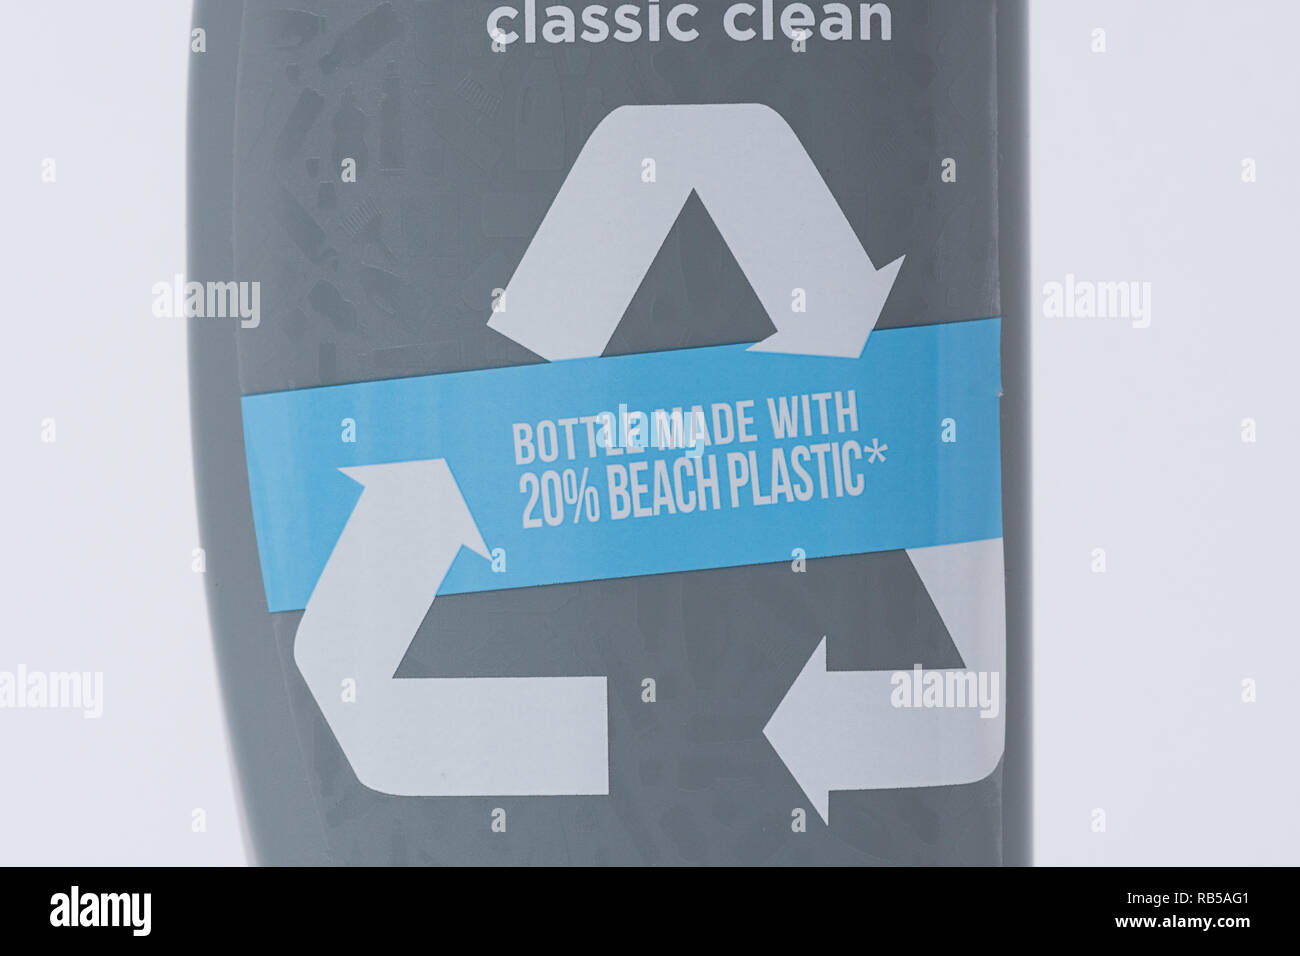 Head and Shoulders shampoo bottle made from 20% recycled beach plastic - Stock Image